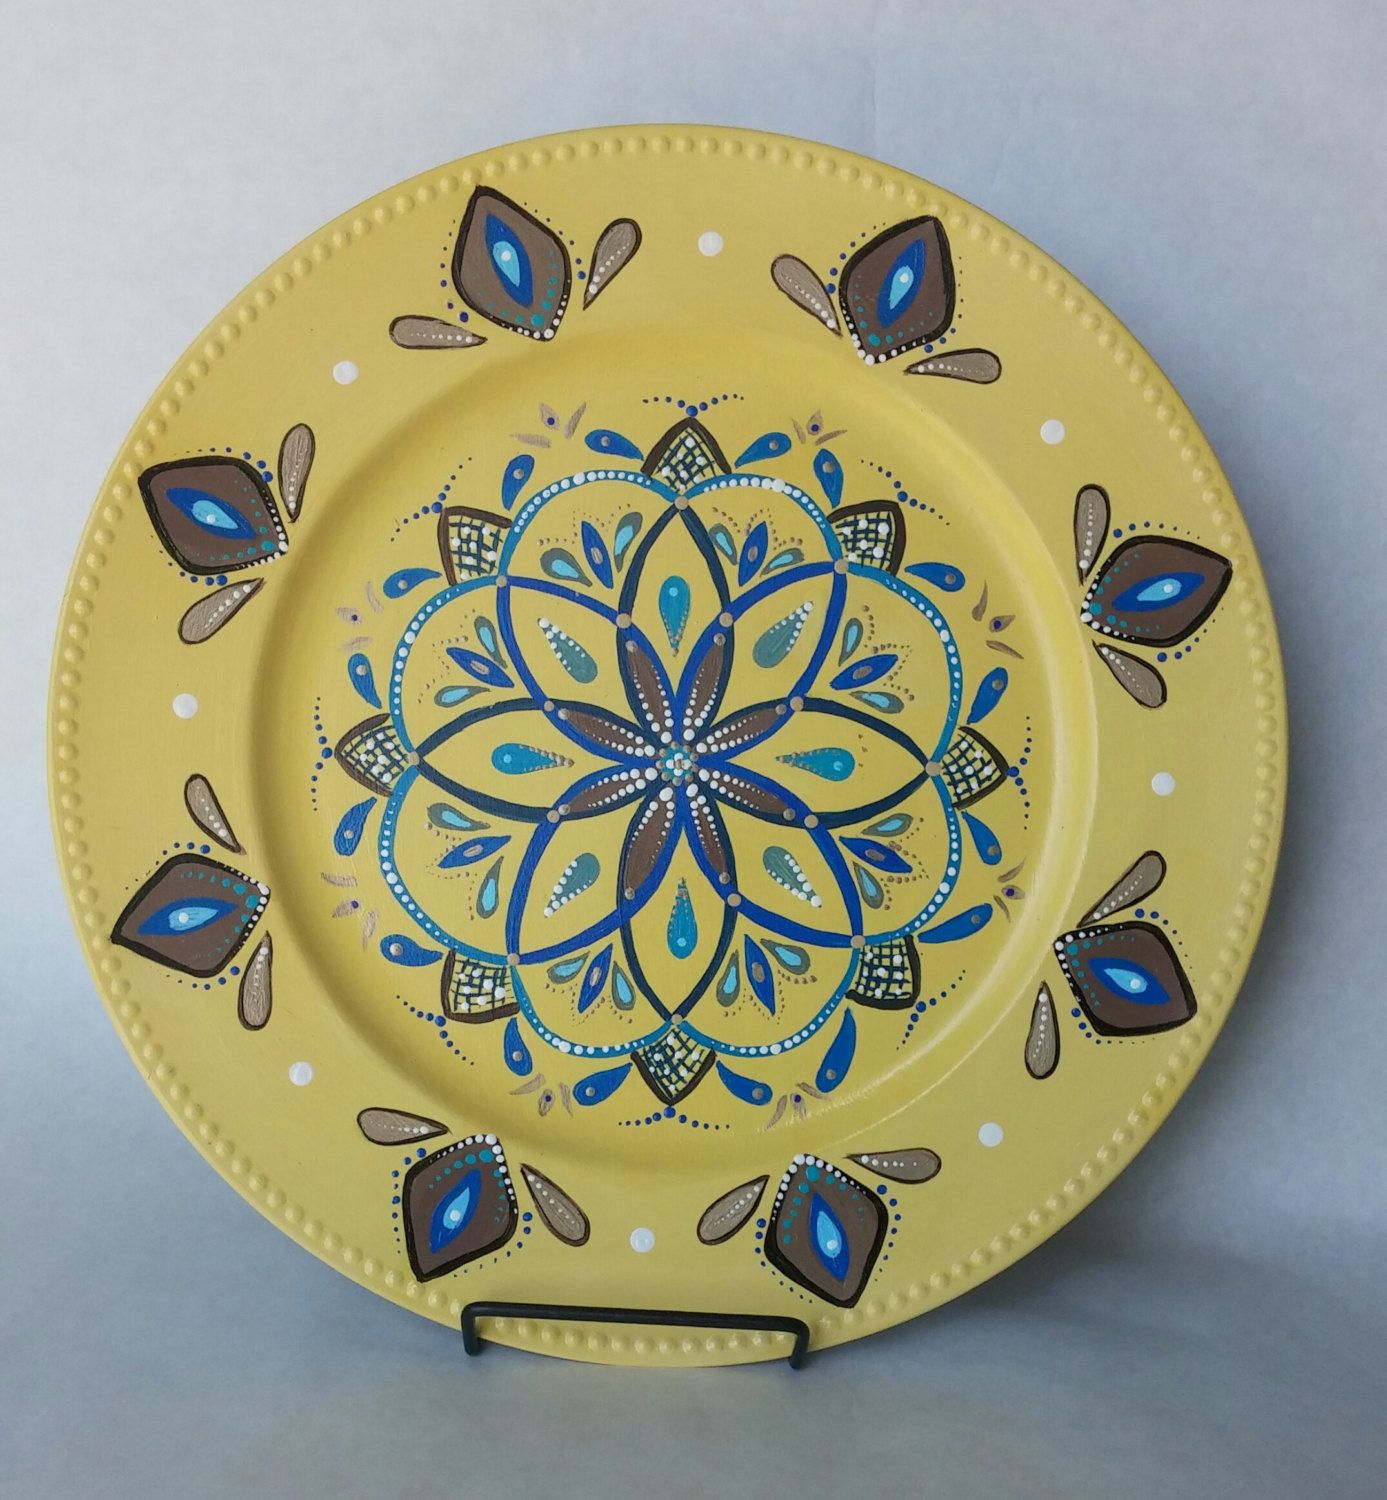 Decorative Plate Hand Painted Wall Decoration Platter Yellow Dining Room Decor And Blue By